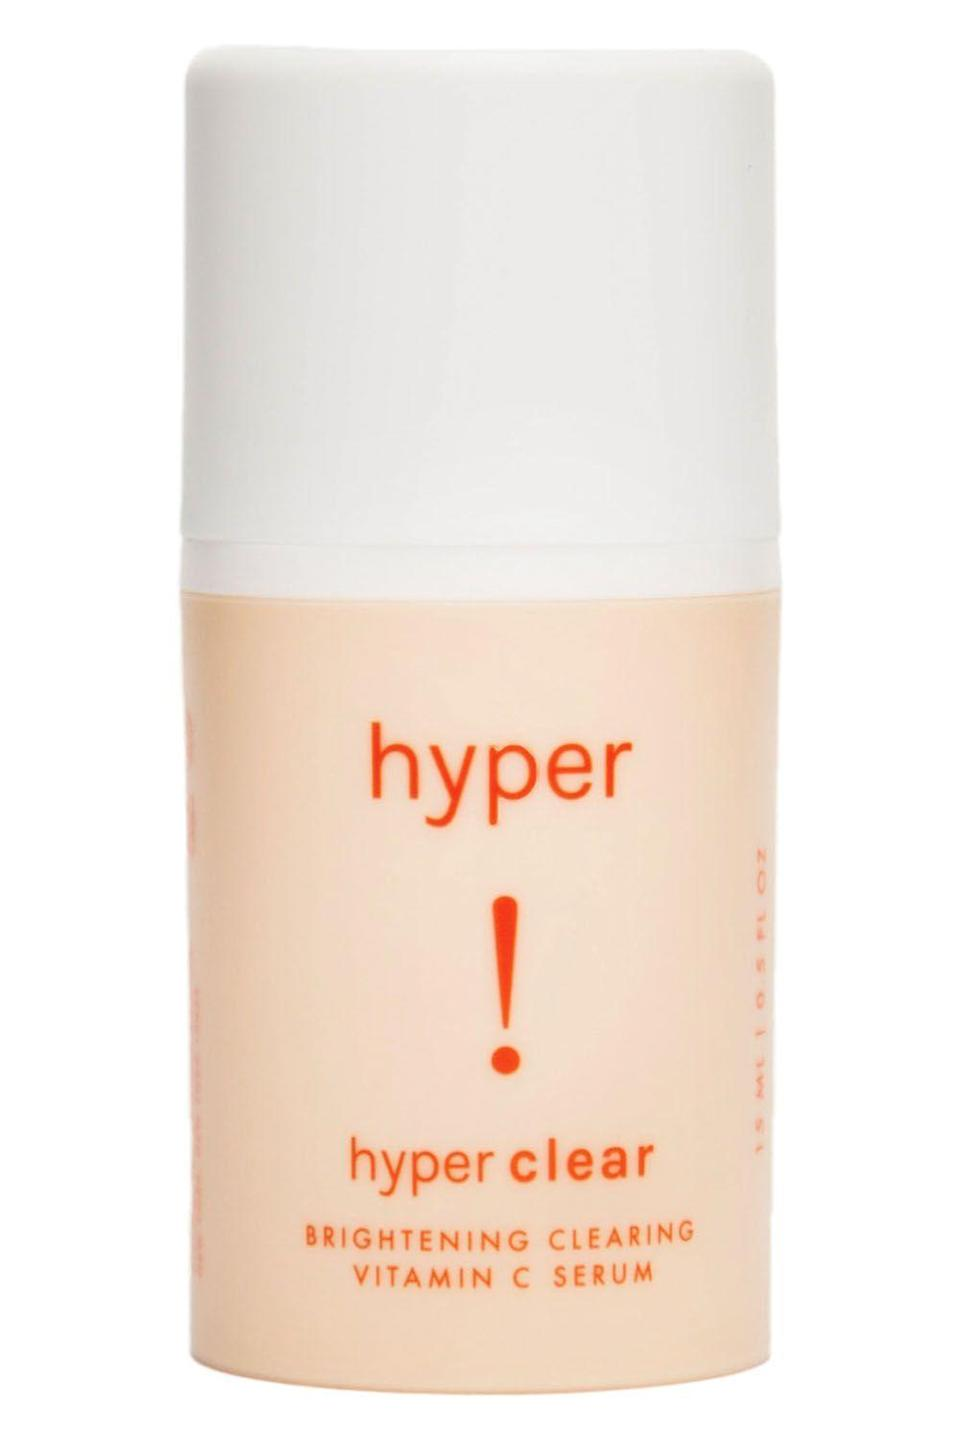 """<p>gethyperskin.com</p><p><strong>$36.00</strong></p><p><a href=""""https://gethyperskin.com/products/hyper-clear"""" rel=""""nofollow noopener"""" target=""""_blank"""" data-ylk=""""slk:Shop Now"""" class=""""link rapid-noclick-resp"""">Shop Now</a></p><p>NGL, my main skincare goal is to look bright and glowy AF. That means I've pretty much tried every single serum that claims to fade hyperpigmentation (aka those dark spots and marks that zits can leave behind). And after all of those tests and trials, I can definitely tell you this is one of the best. </p><p>This serum contains 15 percent vitamin C and E—two <strong>antioxidant powerhouses that</strong> <strong>come together with kojic acid and turmeric </strong><strong>to brighten your skin, cancel out dullness, and fade <a href=""""https://www.cosmopolitan.com/style-beauty/beauty/advice/a42924/how-to-get-and-keep-skin-spot-free/"""" rel=""""nofollow noopener"""" target=""""_blank"""" data-ylk=""""slk:dark spots"""" class=""""link rapid-noclick-resp"""">dark spots</a>. </strong>There's also a combination of natural botanicals in the formula that help prevent future breakouts.<br></p>"""